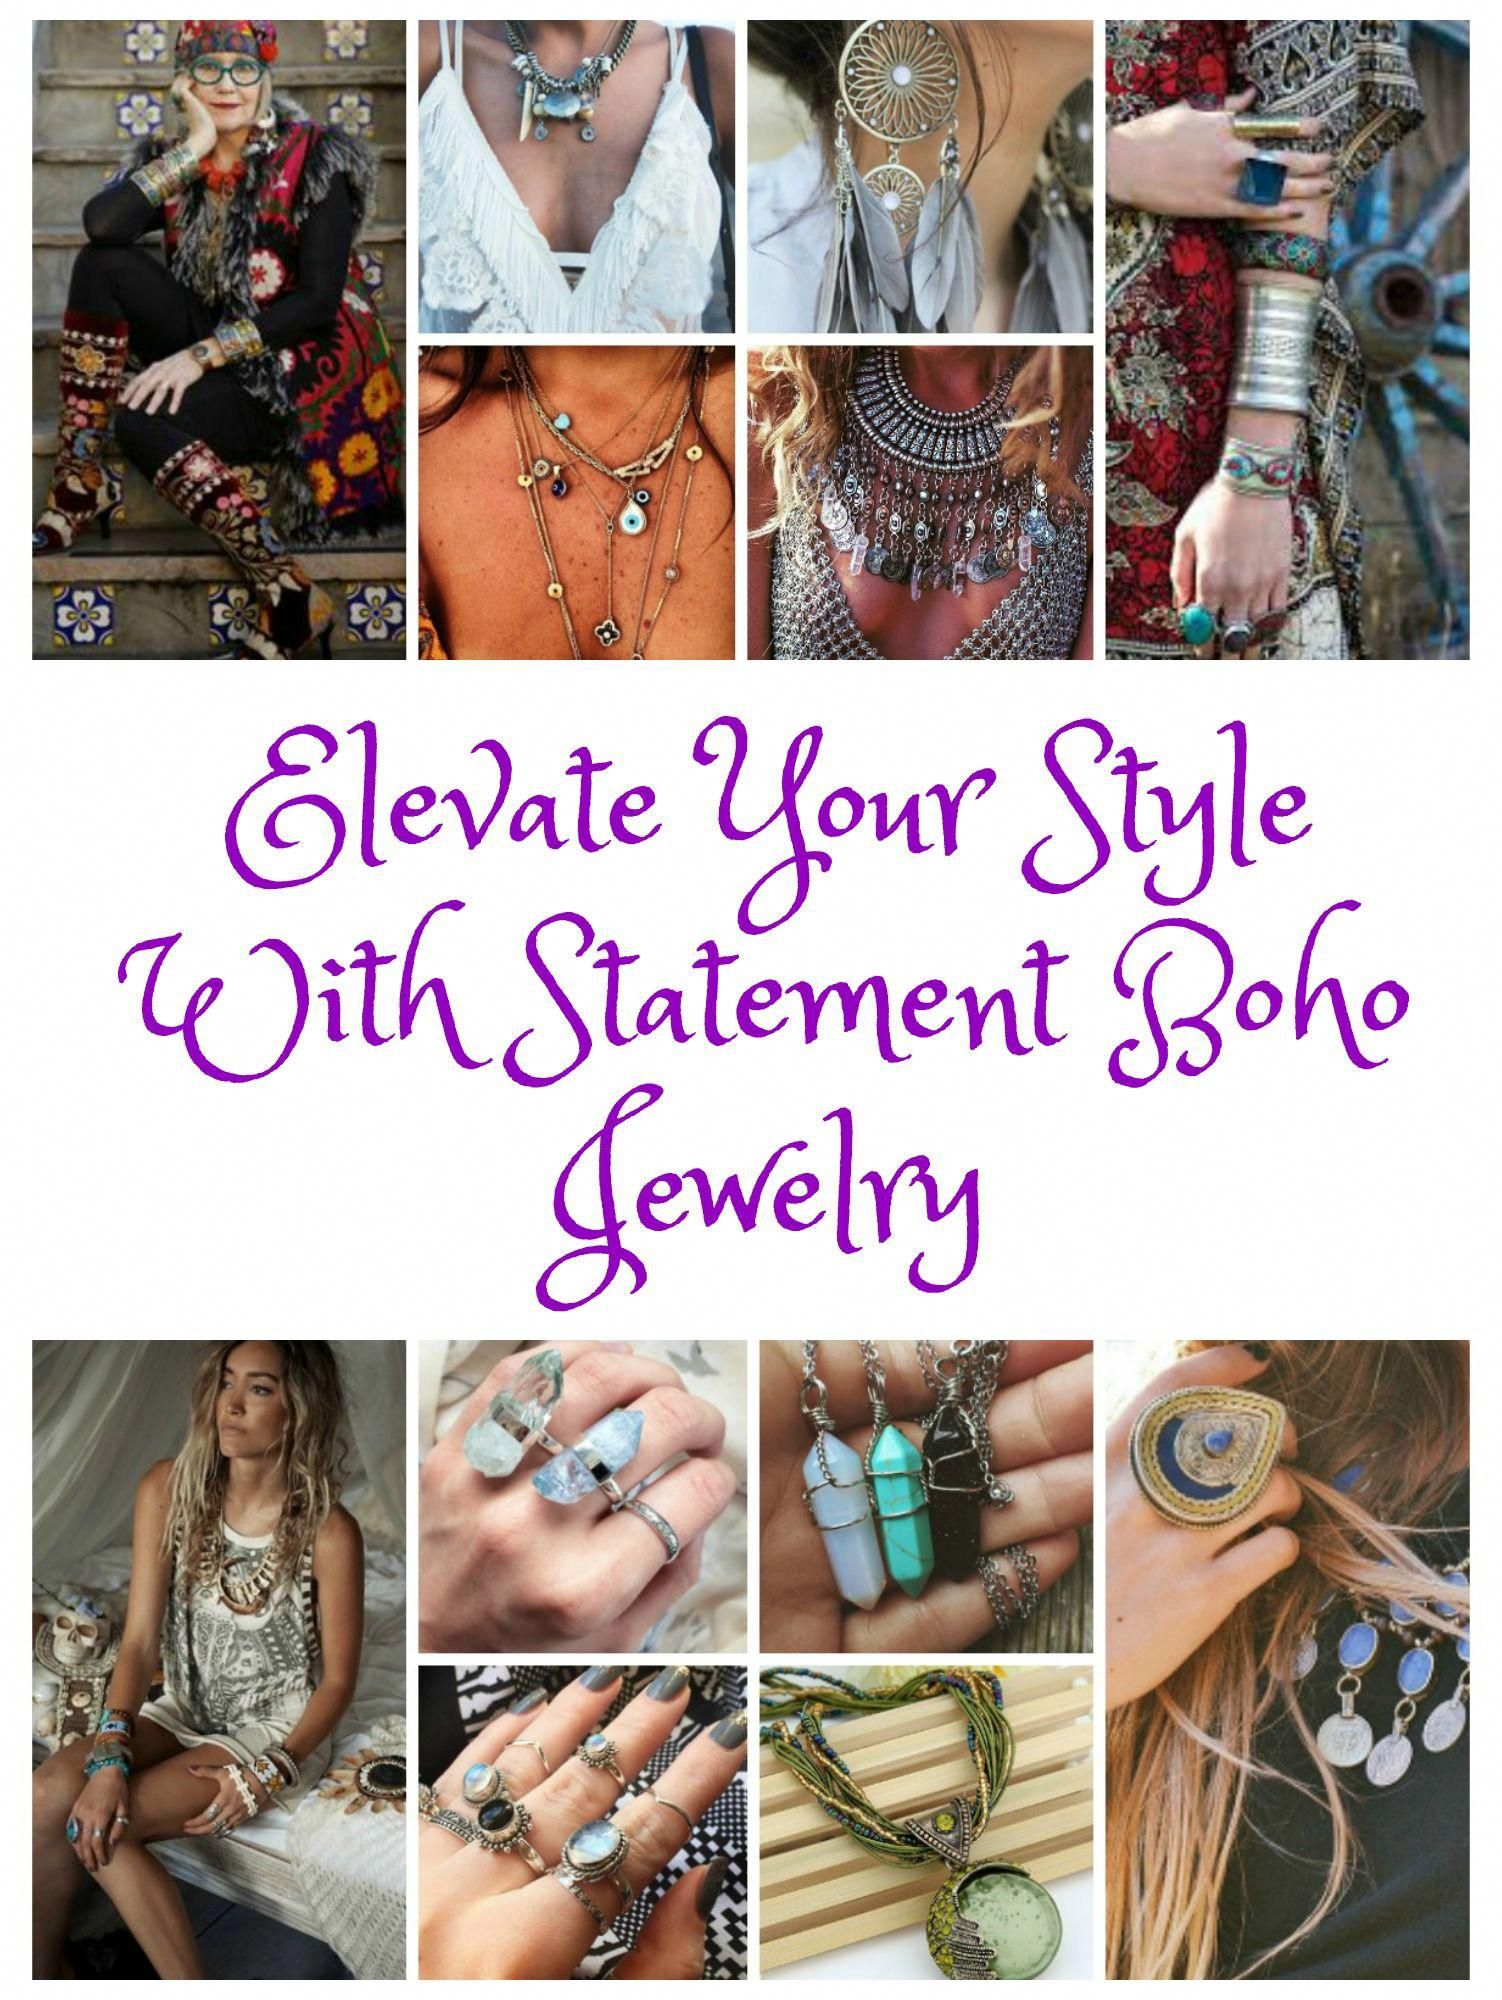 Photo of Elevate Your Style With Statement Boho Jewelry #silverjewelrycleaningsalts